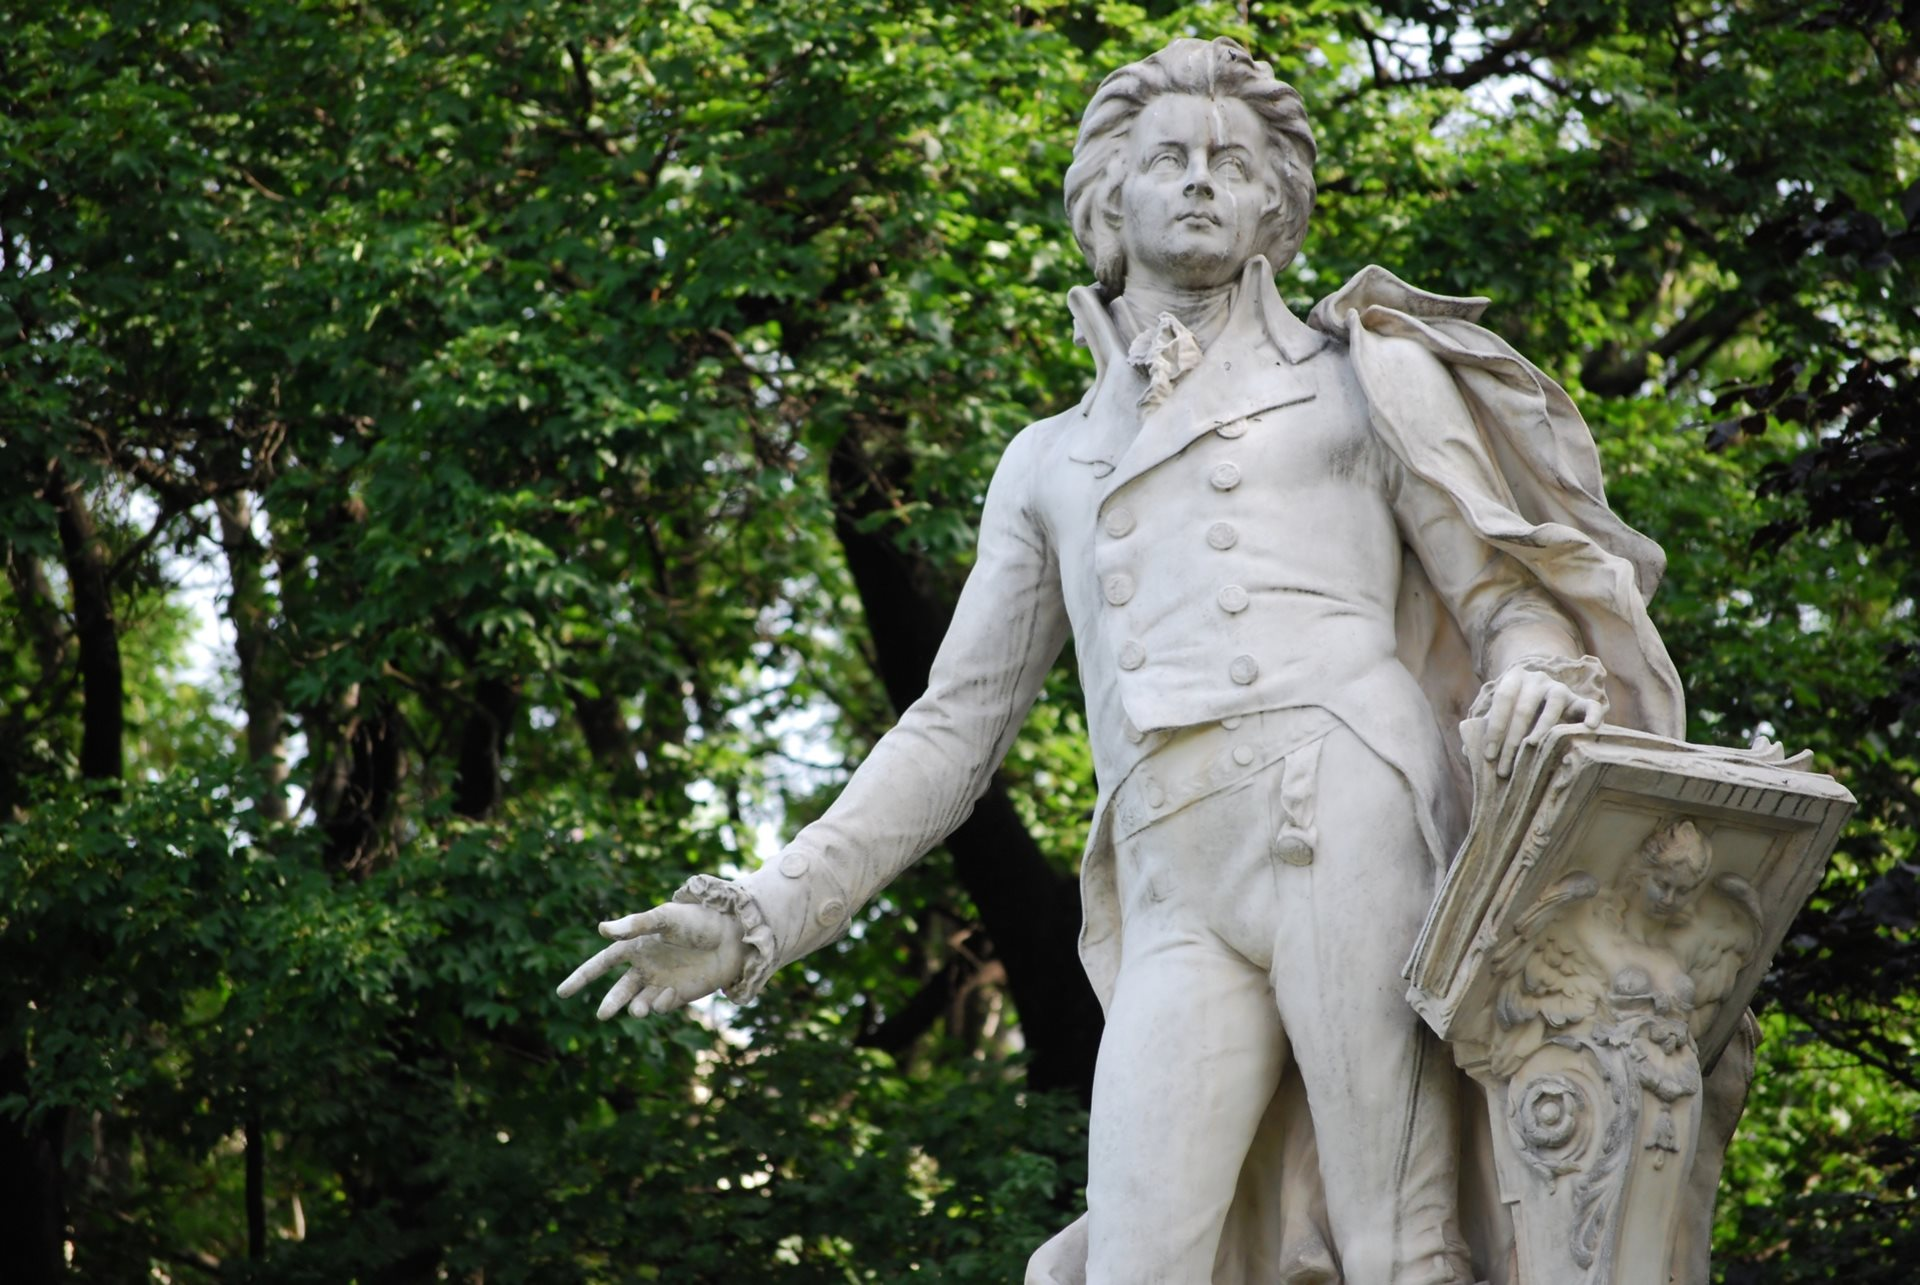 Mozart and the Czech Republic - A Tale of Inspiration